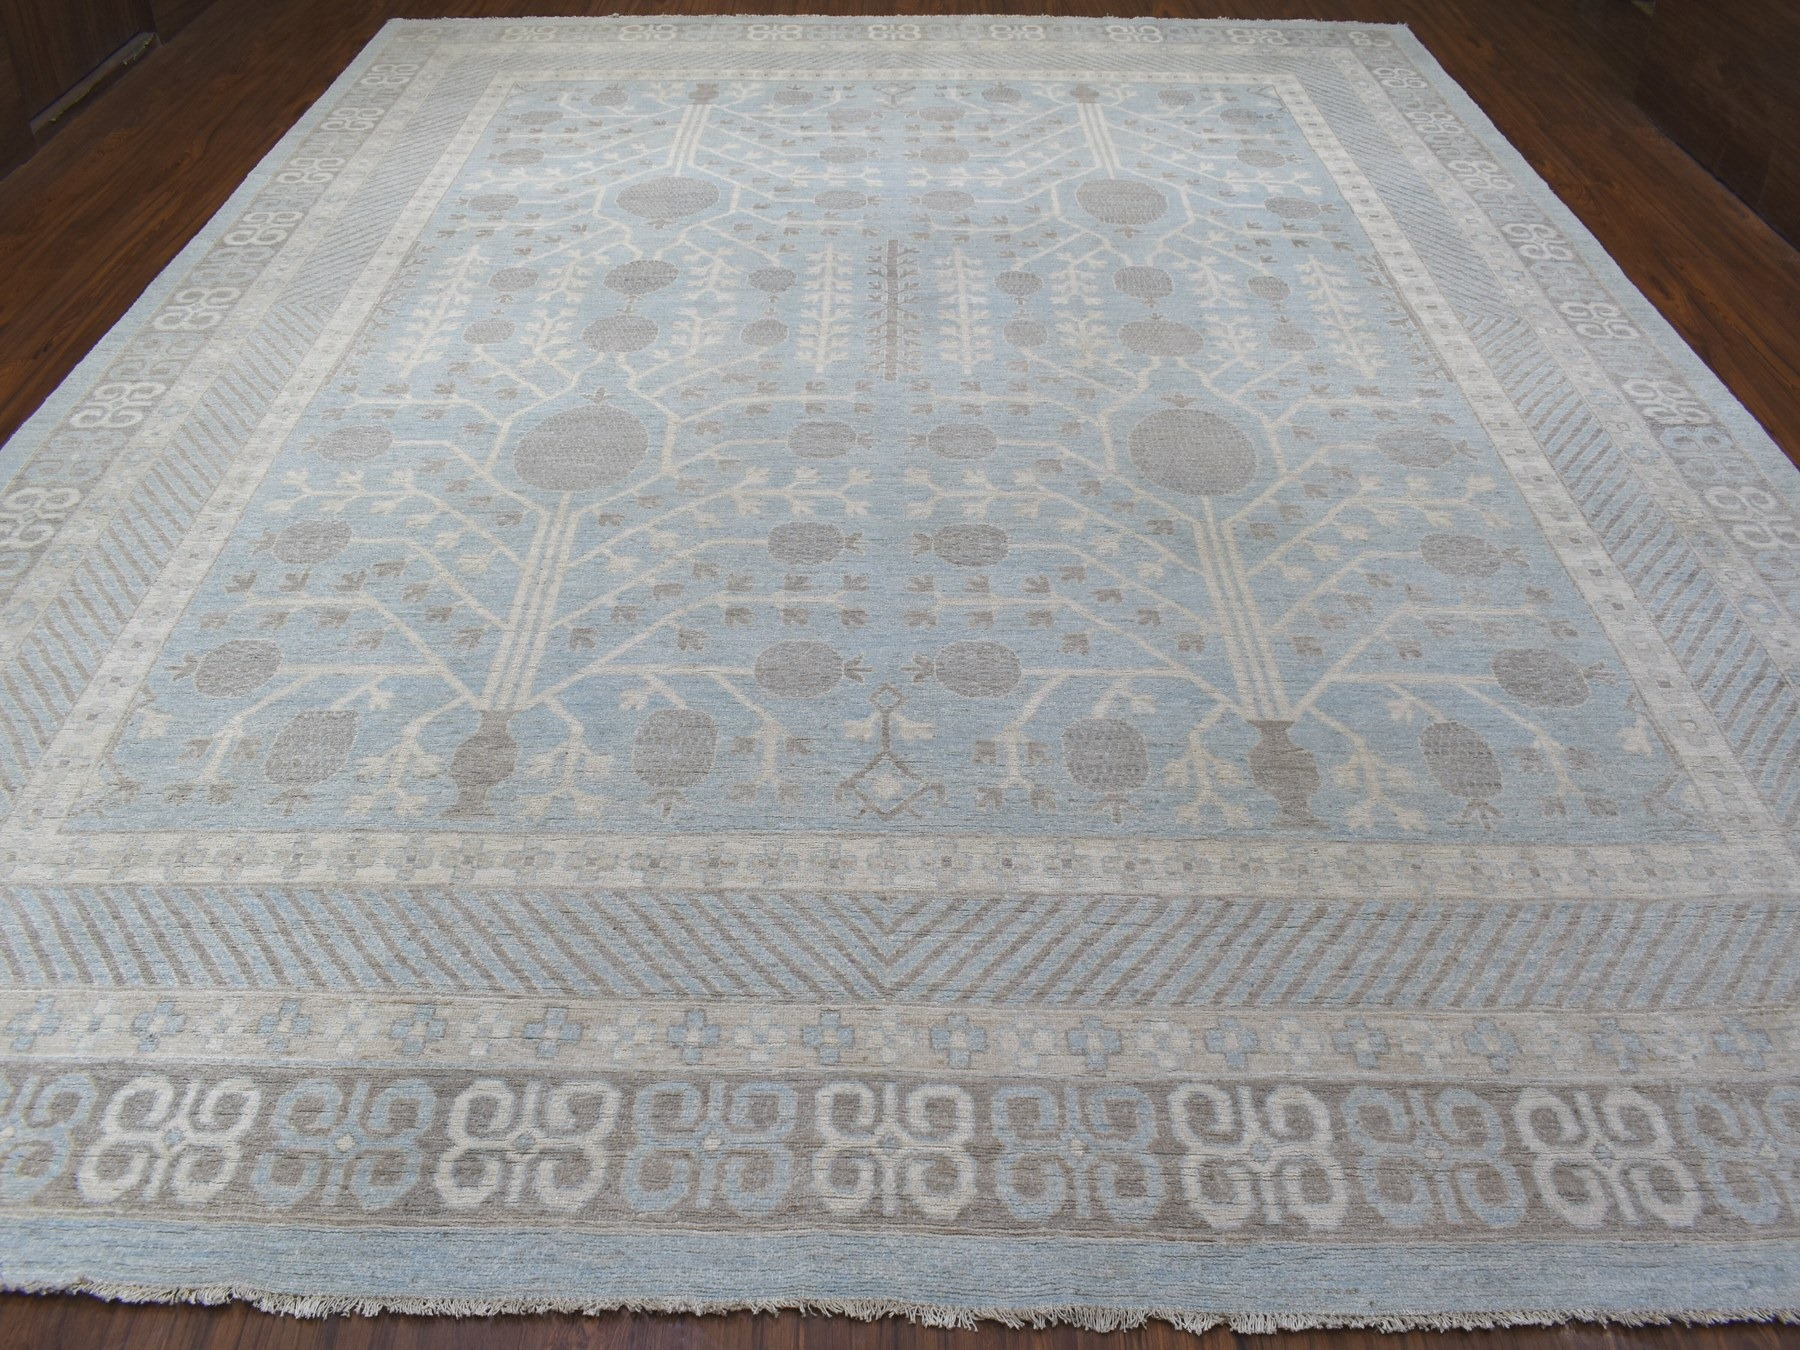 Transitional Wool Hand-Knotted Area Rug 12'0